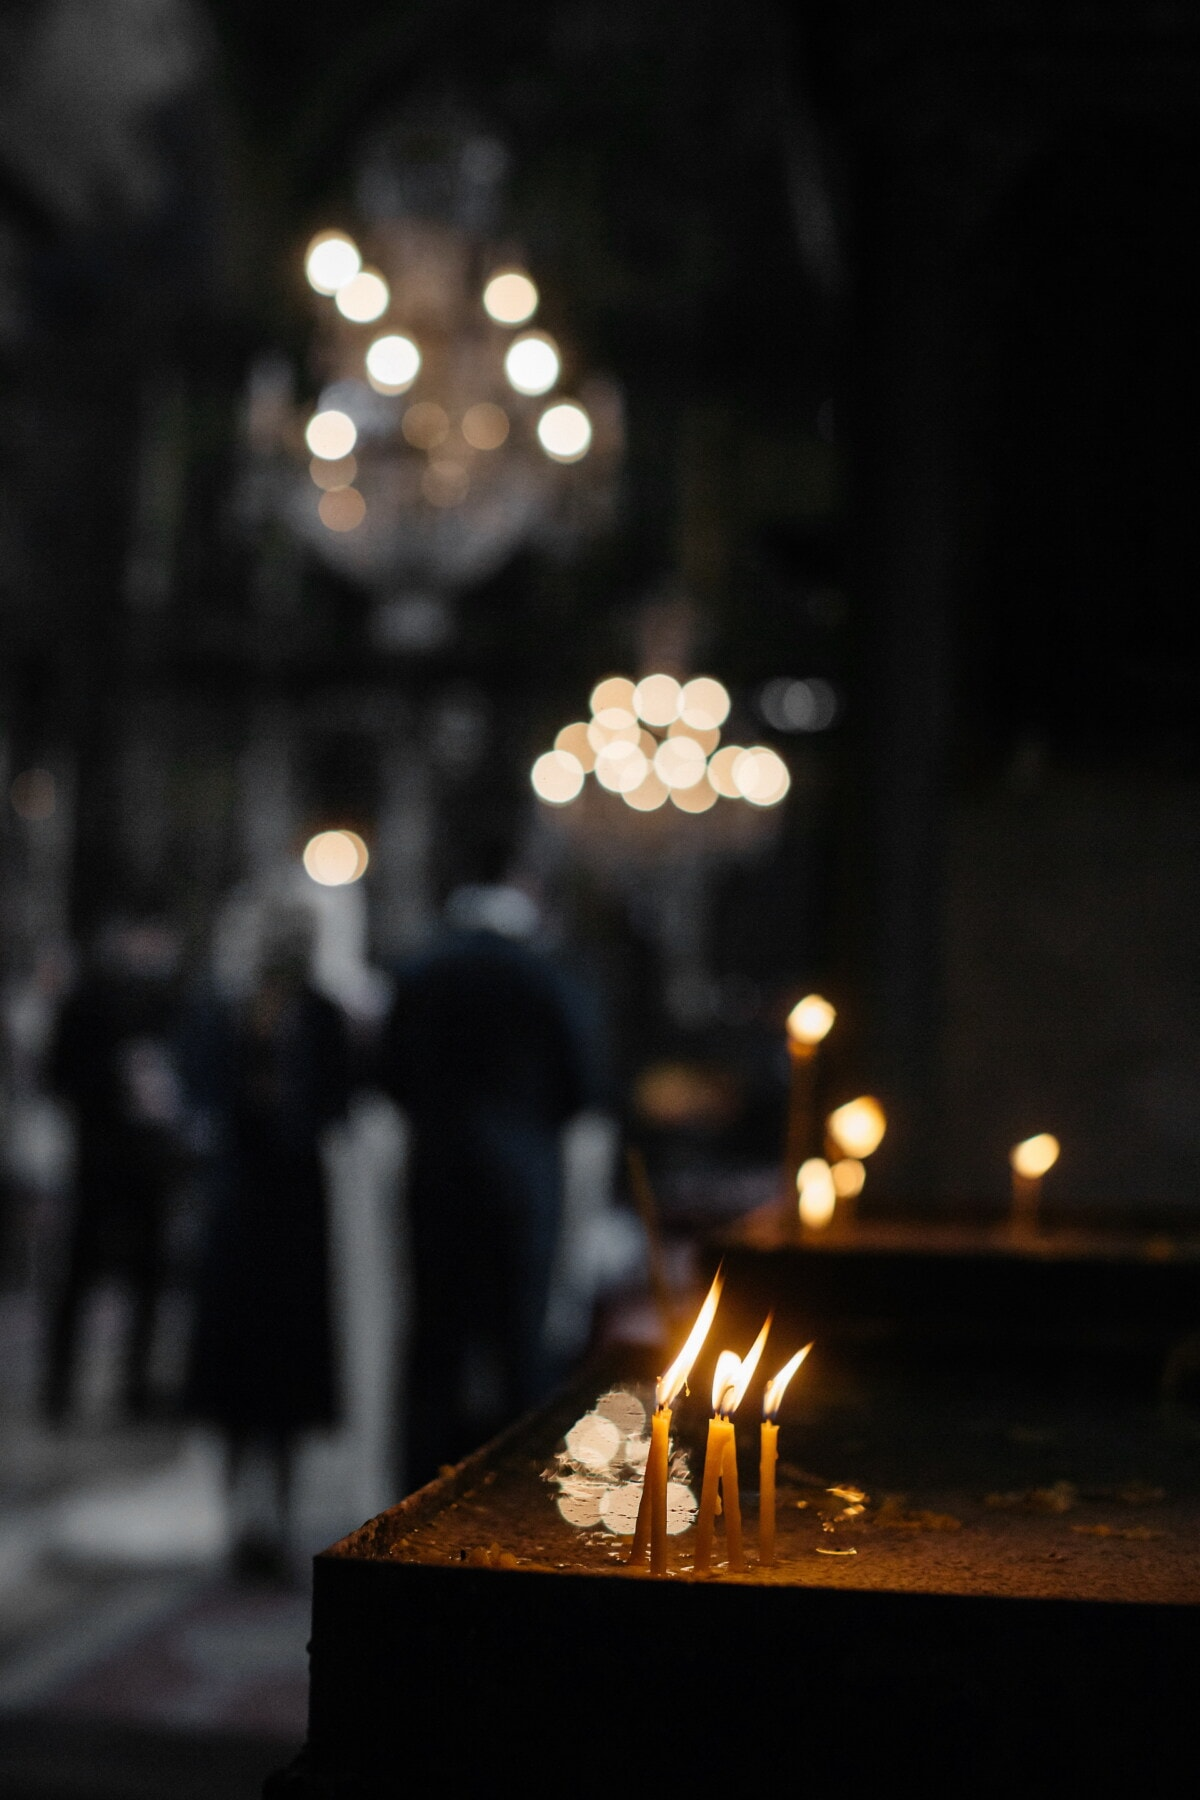 mourning, grief, church, darkness, candles, flame, candlelight, sadness, candle, light